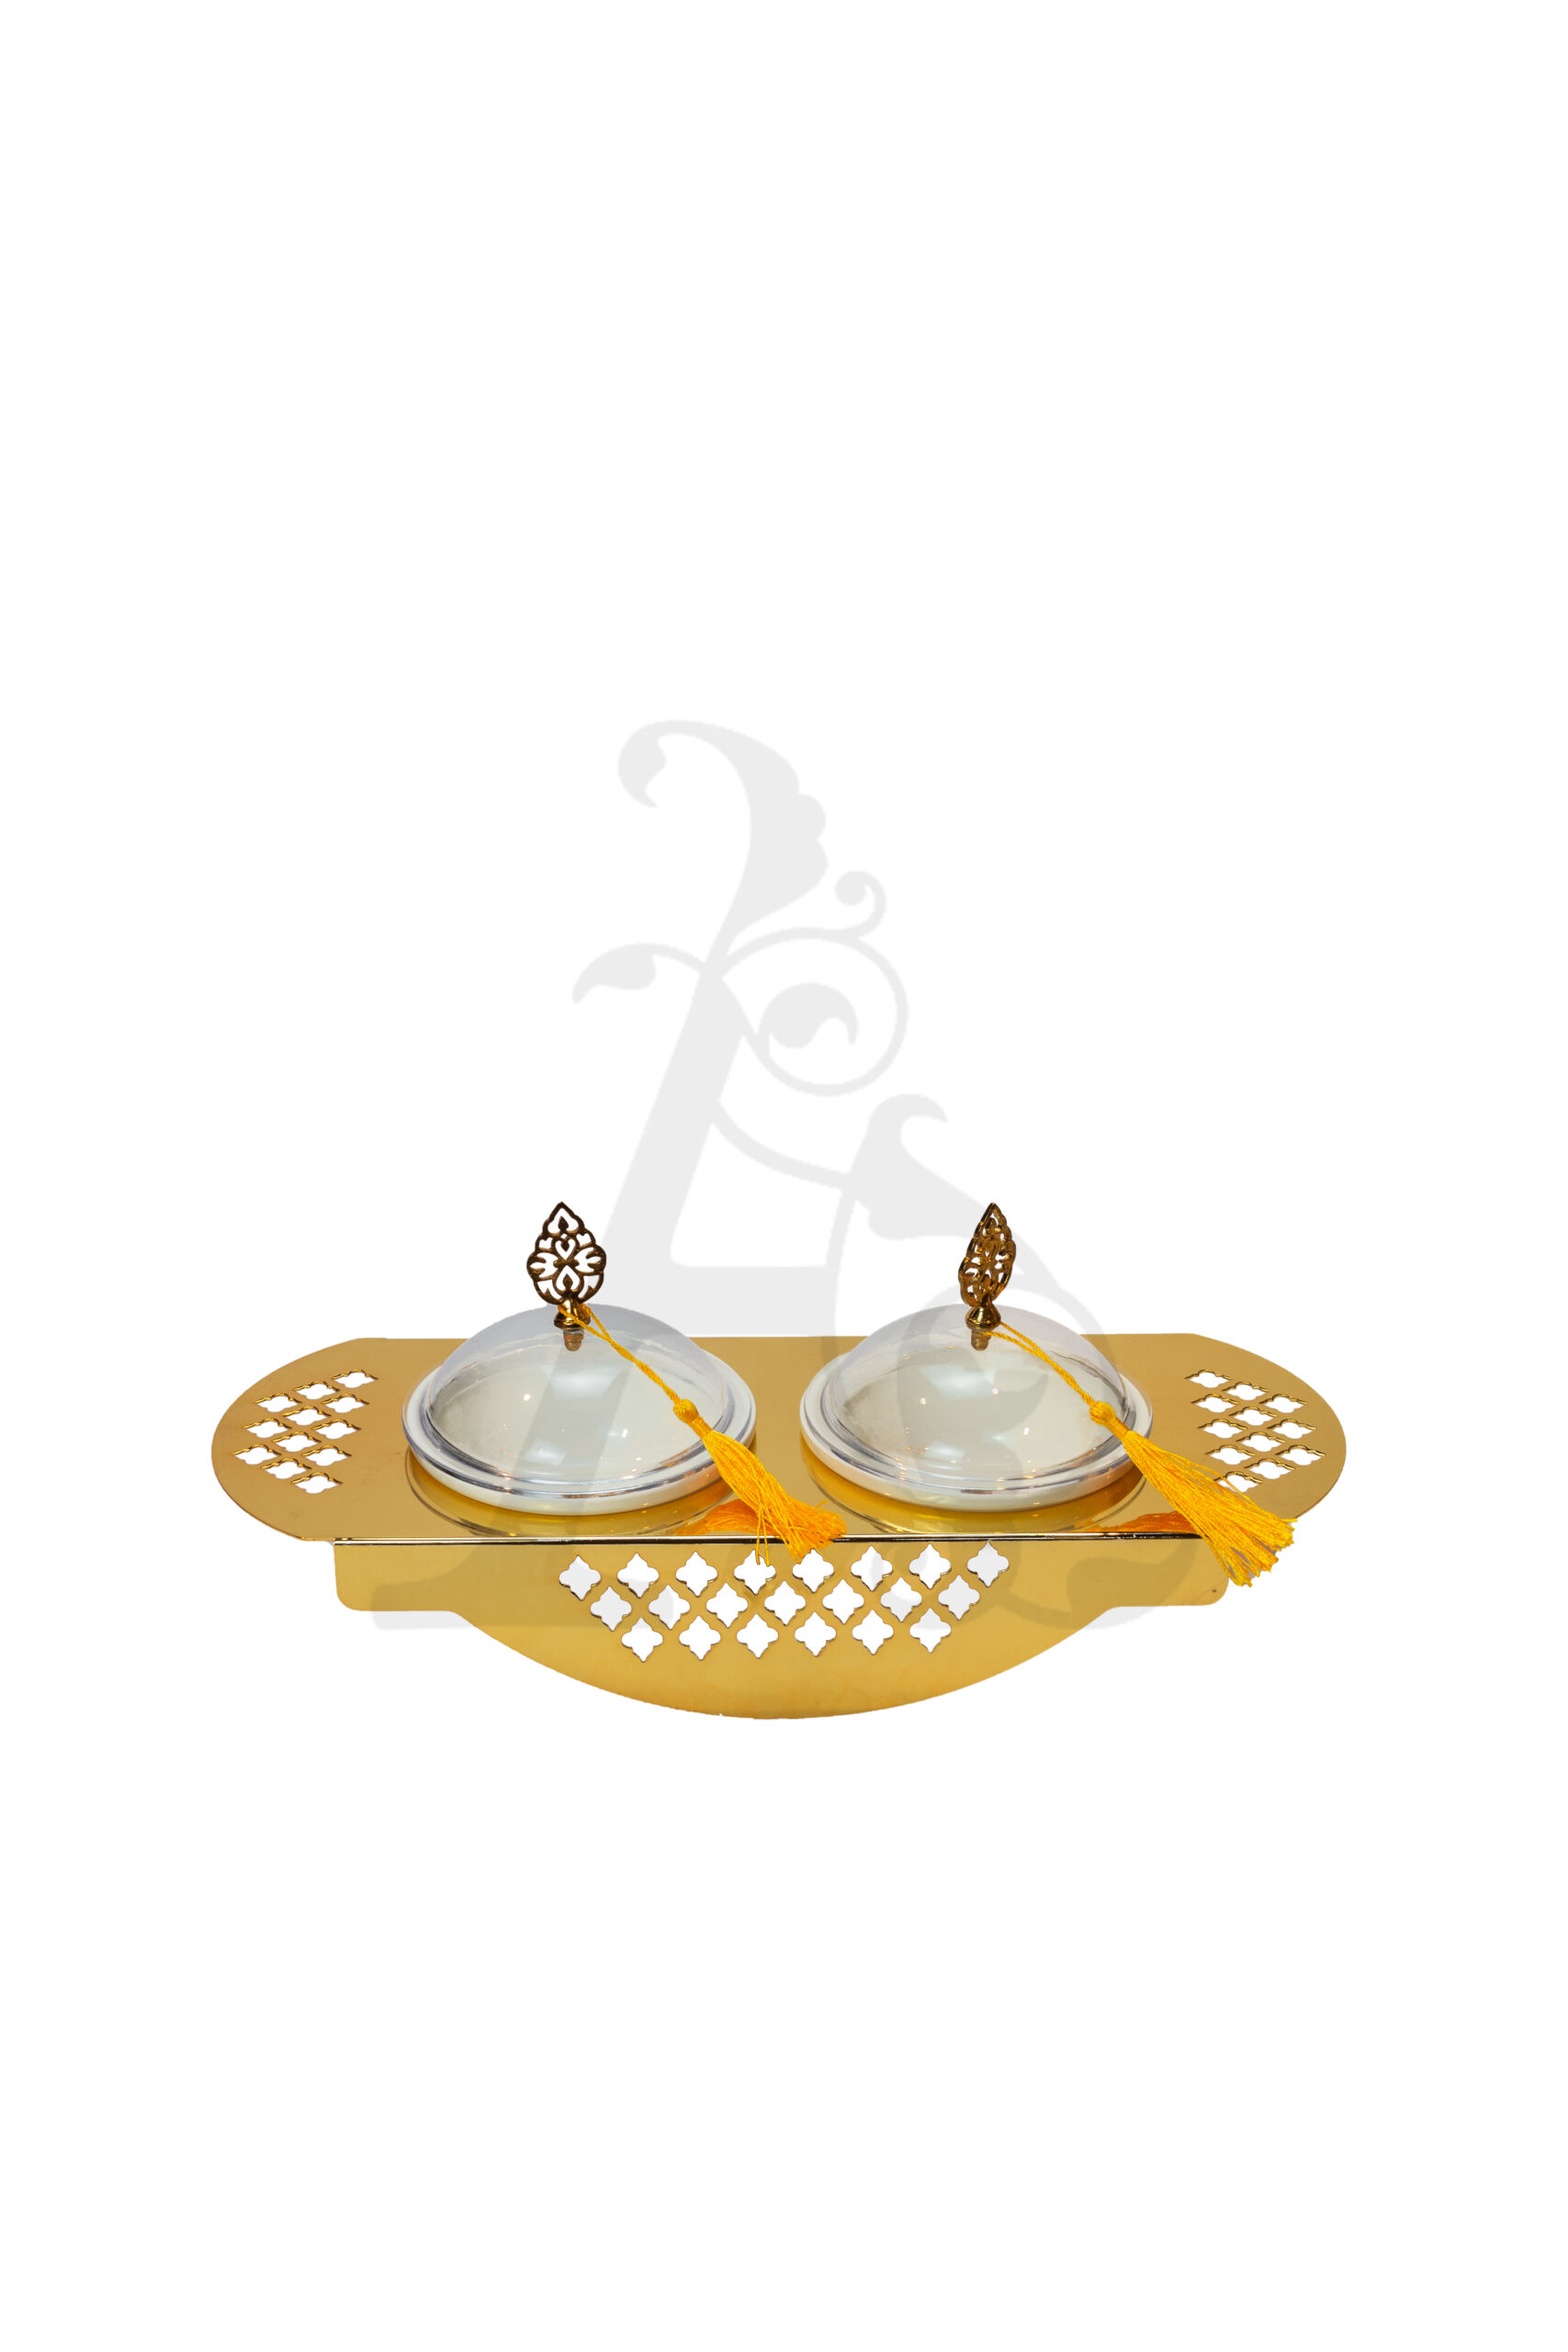 Buy Delight Servers 2 Pieces Gold and White 40x20.5